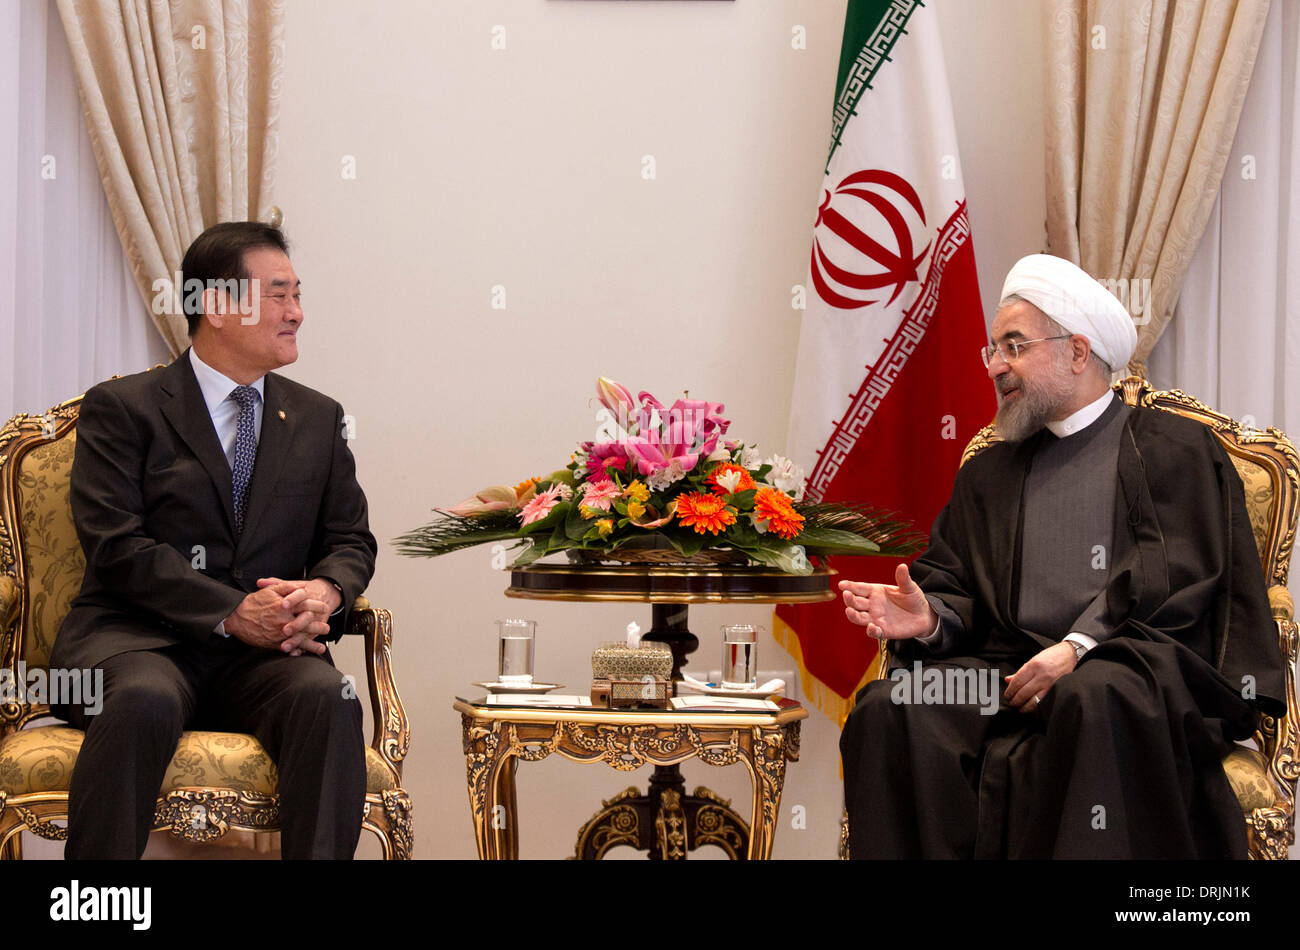 Tehran, Iran. 27th Jan, 2014. Iranian President Hassan Rouhani (R) talks with South Korean National Assembly Speaker Kang Chang-hee during their meeting at presidential palace in Tehran, capital of Iran, on Jan. 27, 2014. Rouhani called for closer economic ties with South Korea here on Monday, semi-official Fars news agency reported. Credit:  Ahmad Halabisaz/Xinhua/Alamy Live News - Stock Image